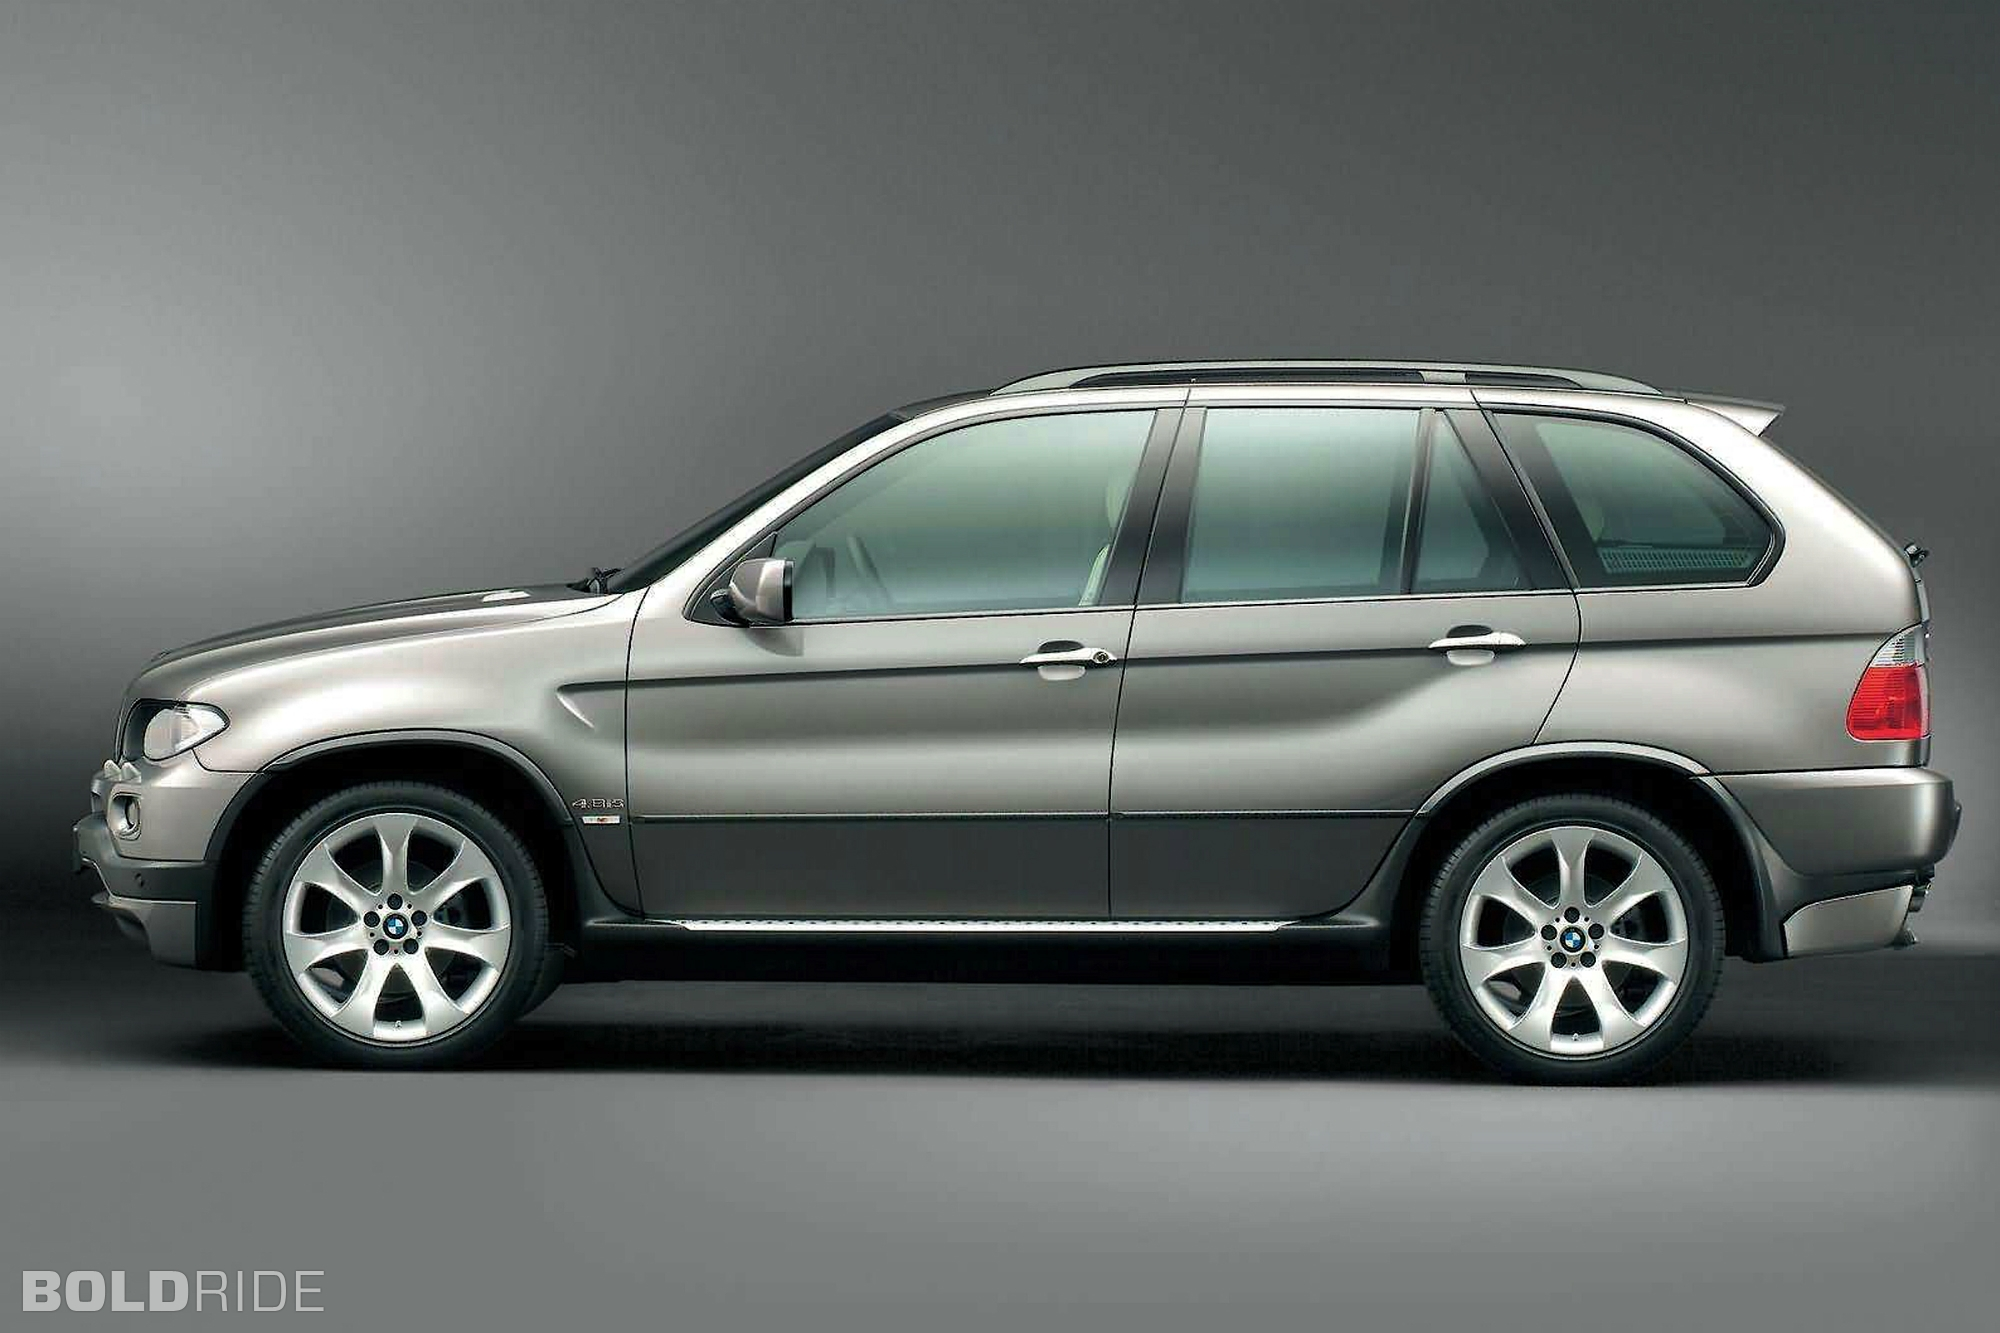 2004 bmw x5 information and photos zombiedrive. Black Bedroom Furniture Sets. Home Design Ideas